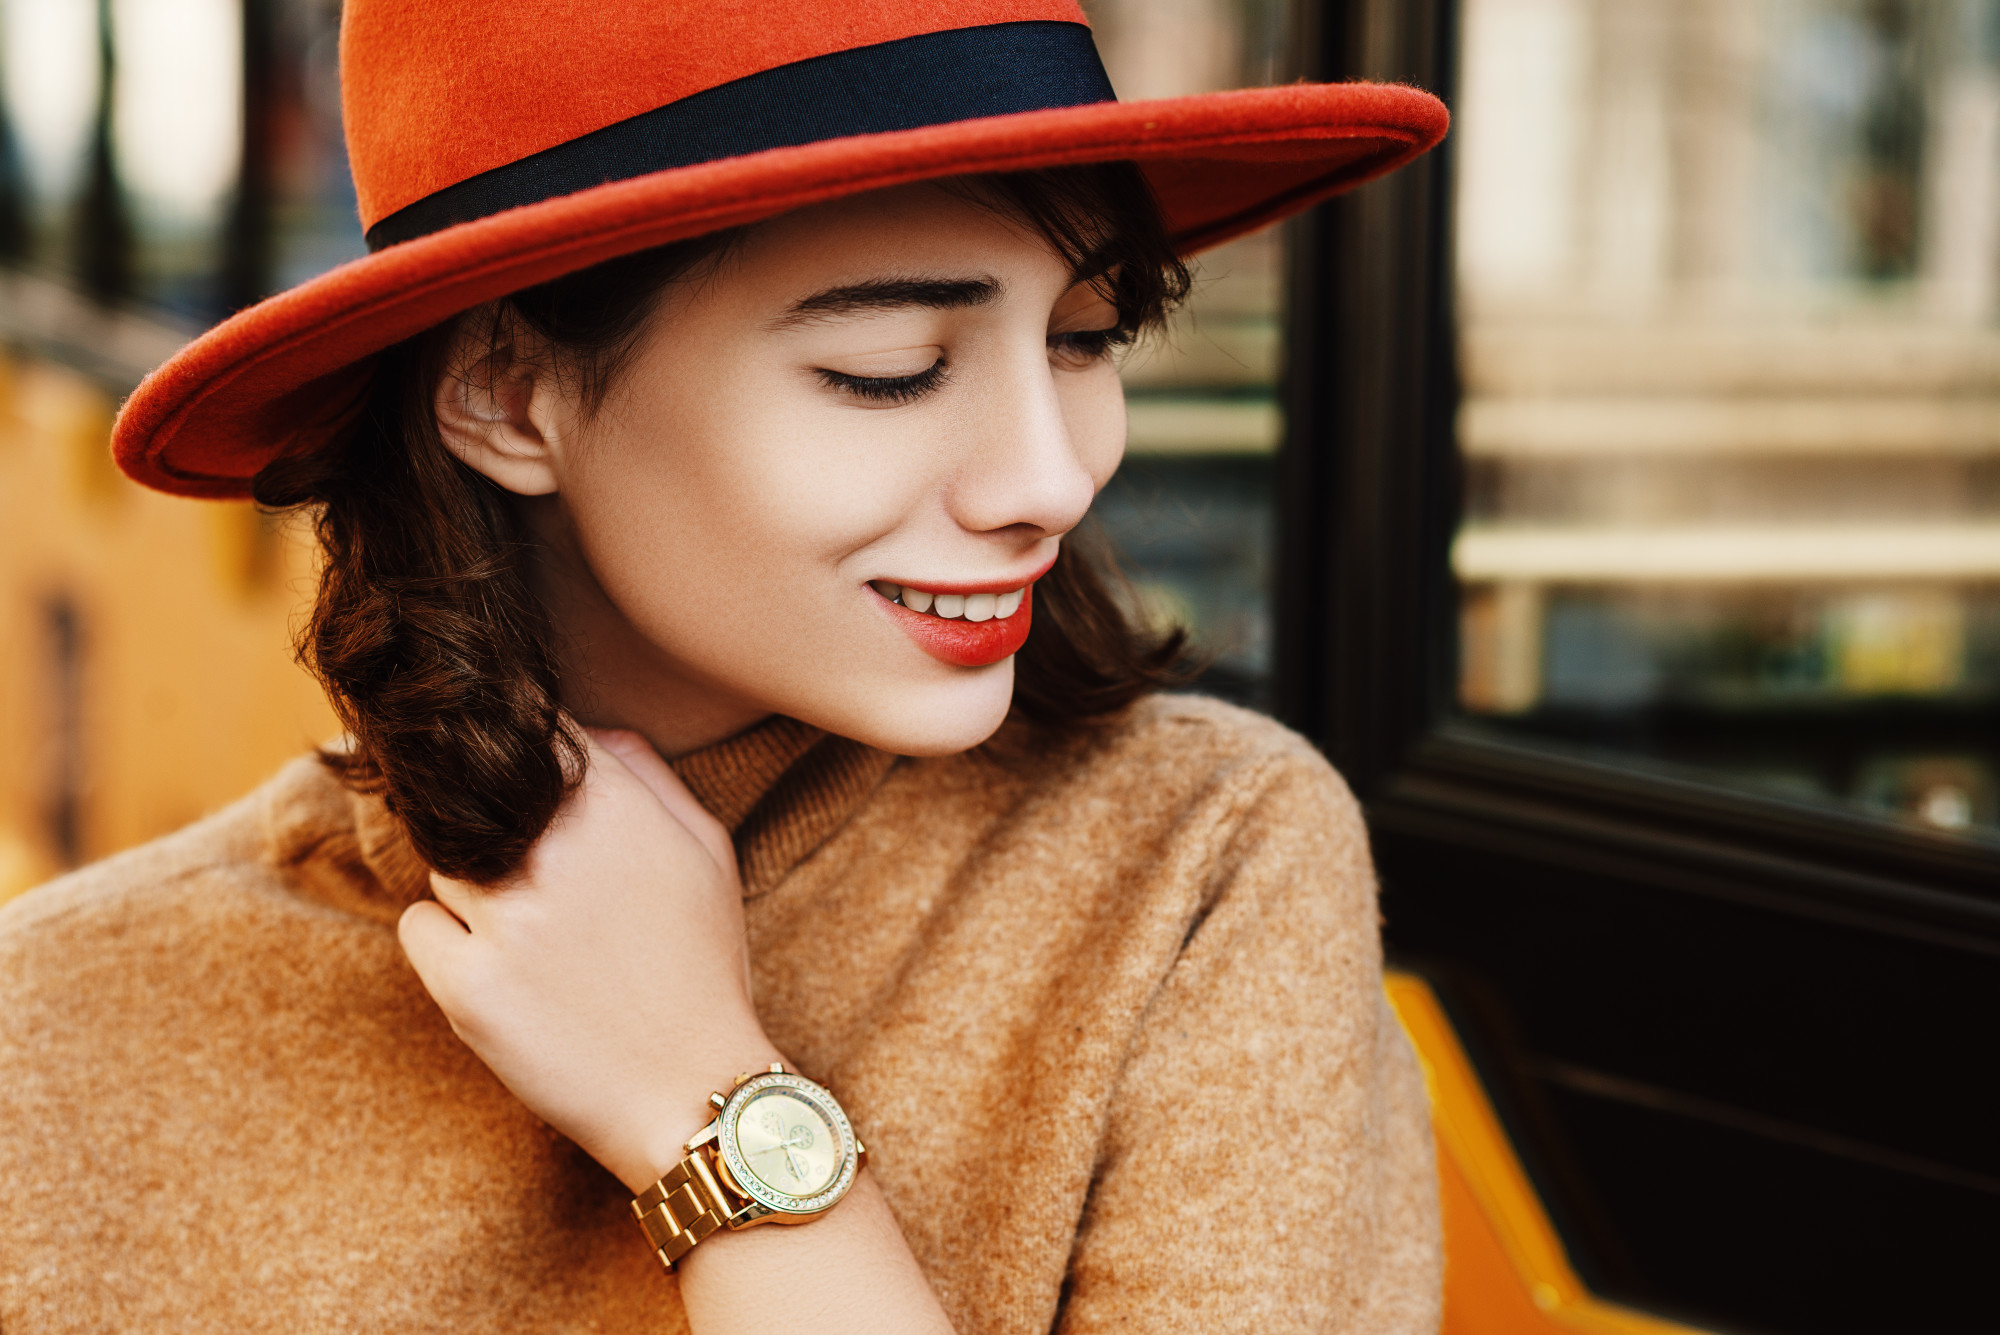 Are Fashion Watches Worth Buying?